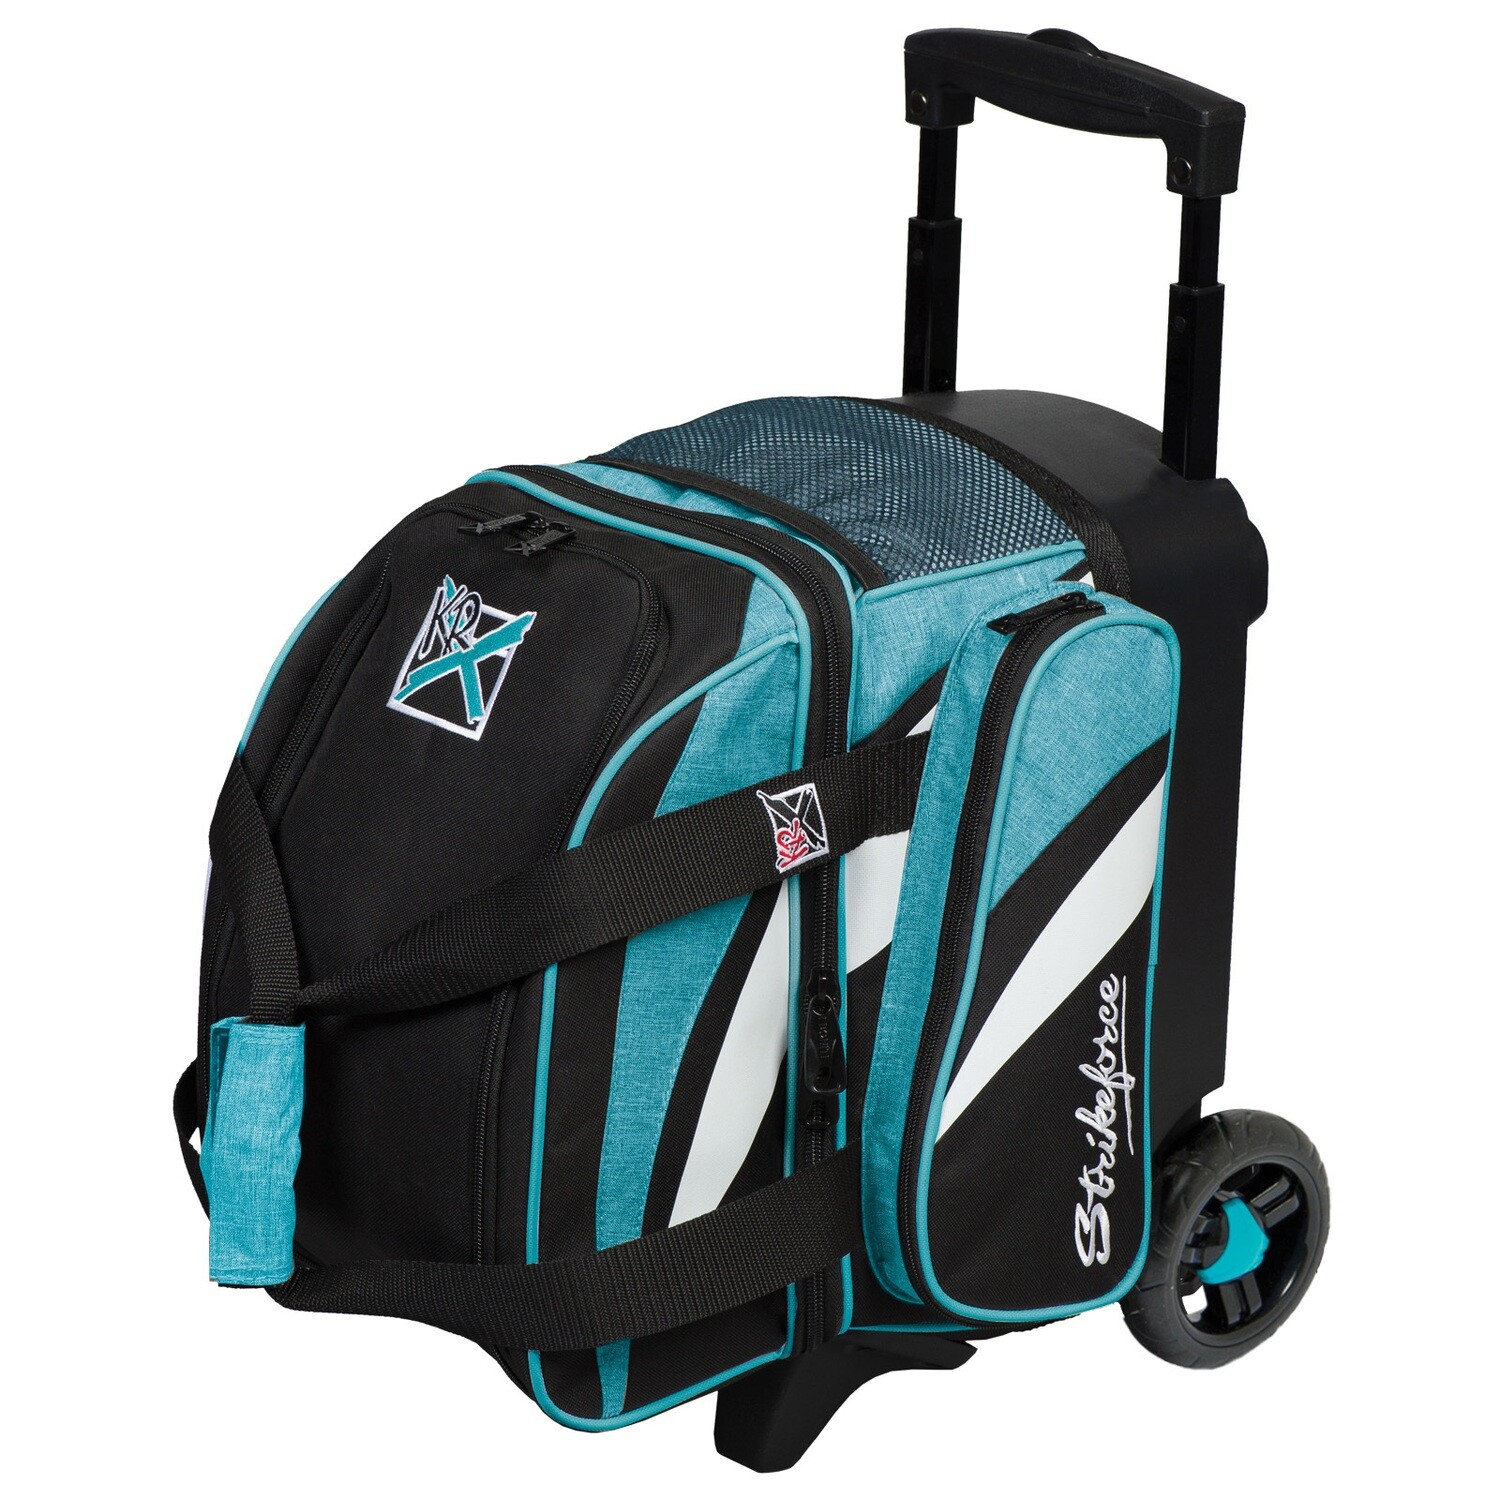 KR Strikeforce Cruiser Teal/White/Black 1 Ball Roller Bowling Bag